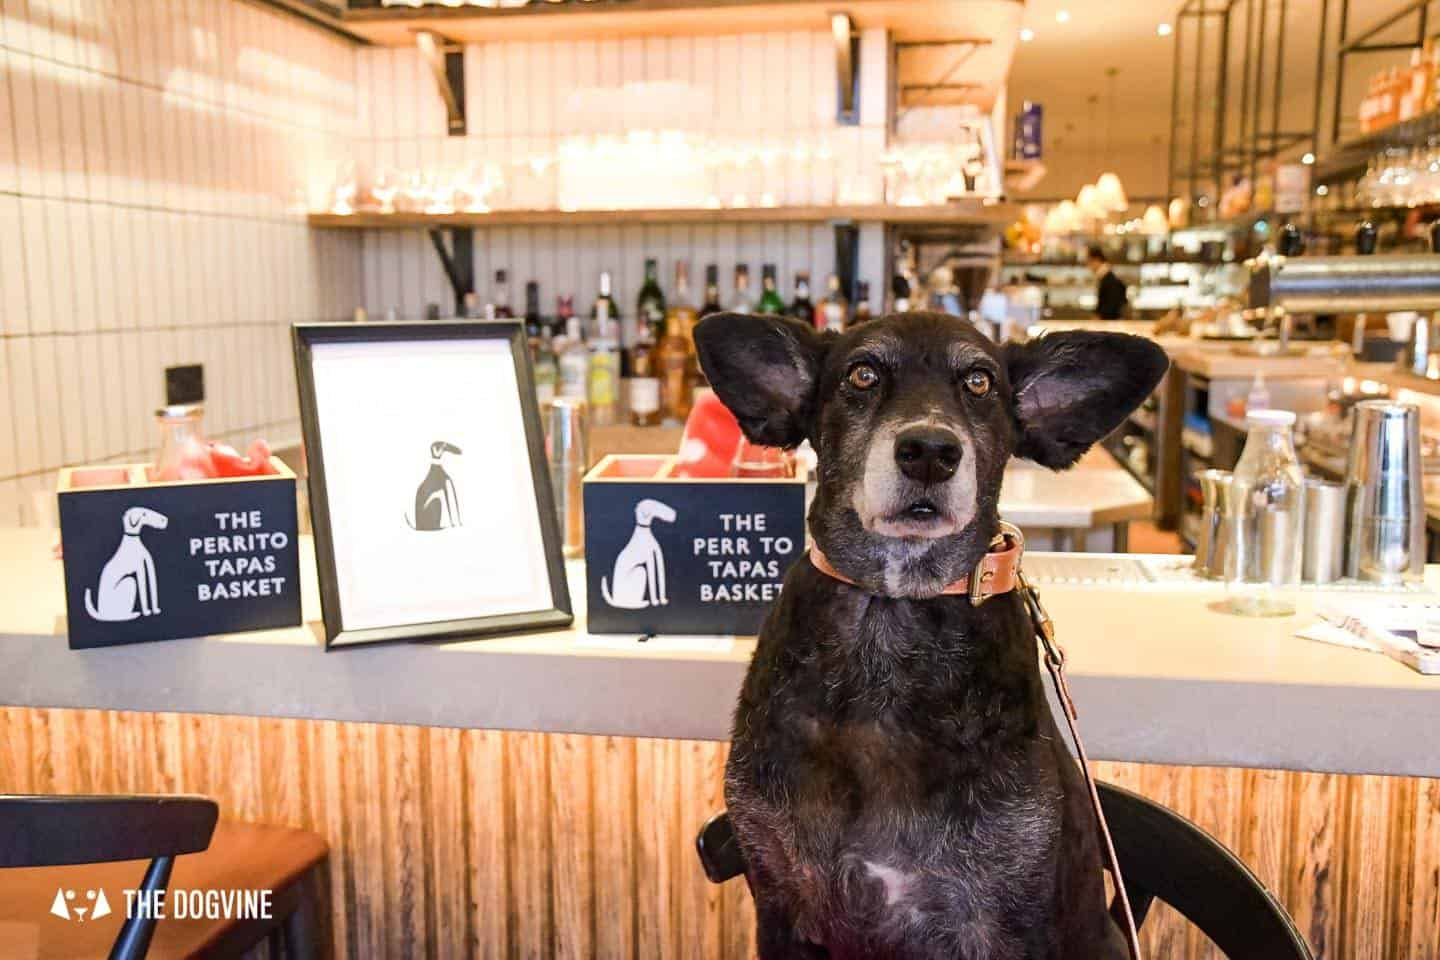 Dog-friendly London | The Best Dog-friendly Things To Do in London - Dog Tapas at Brindisa Battersea